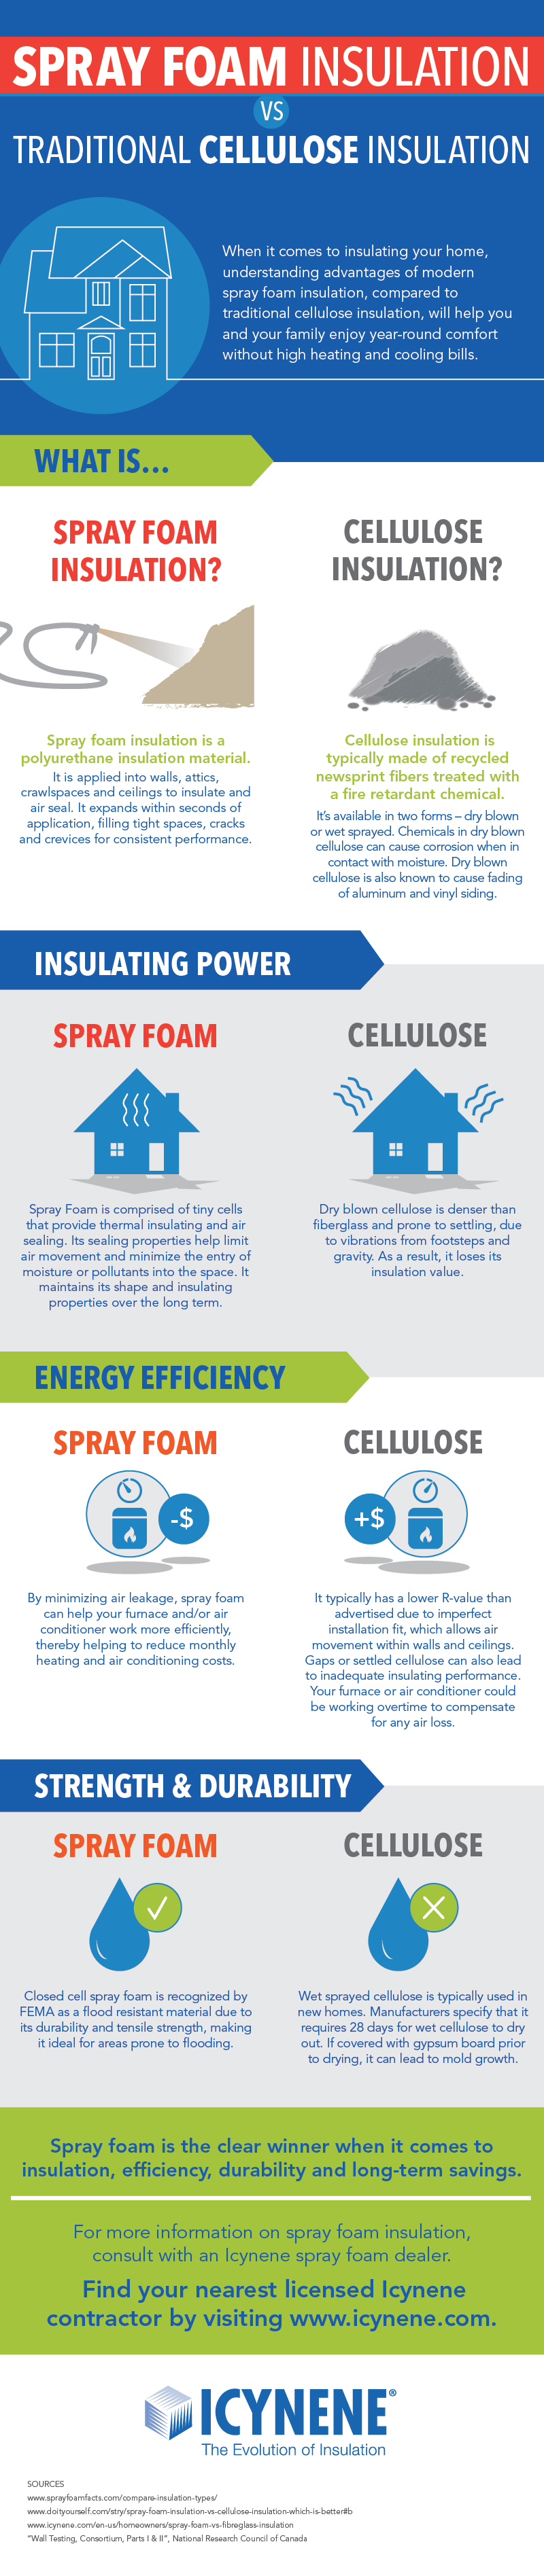 Spray foam insulation vs. cellulose insulation